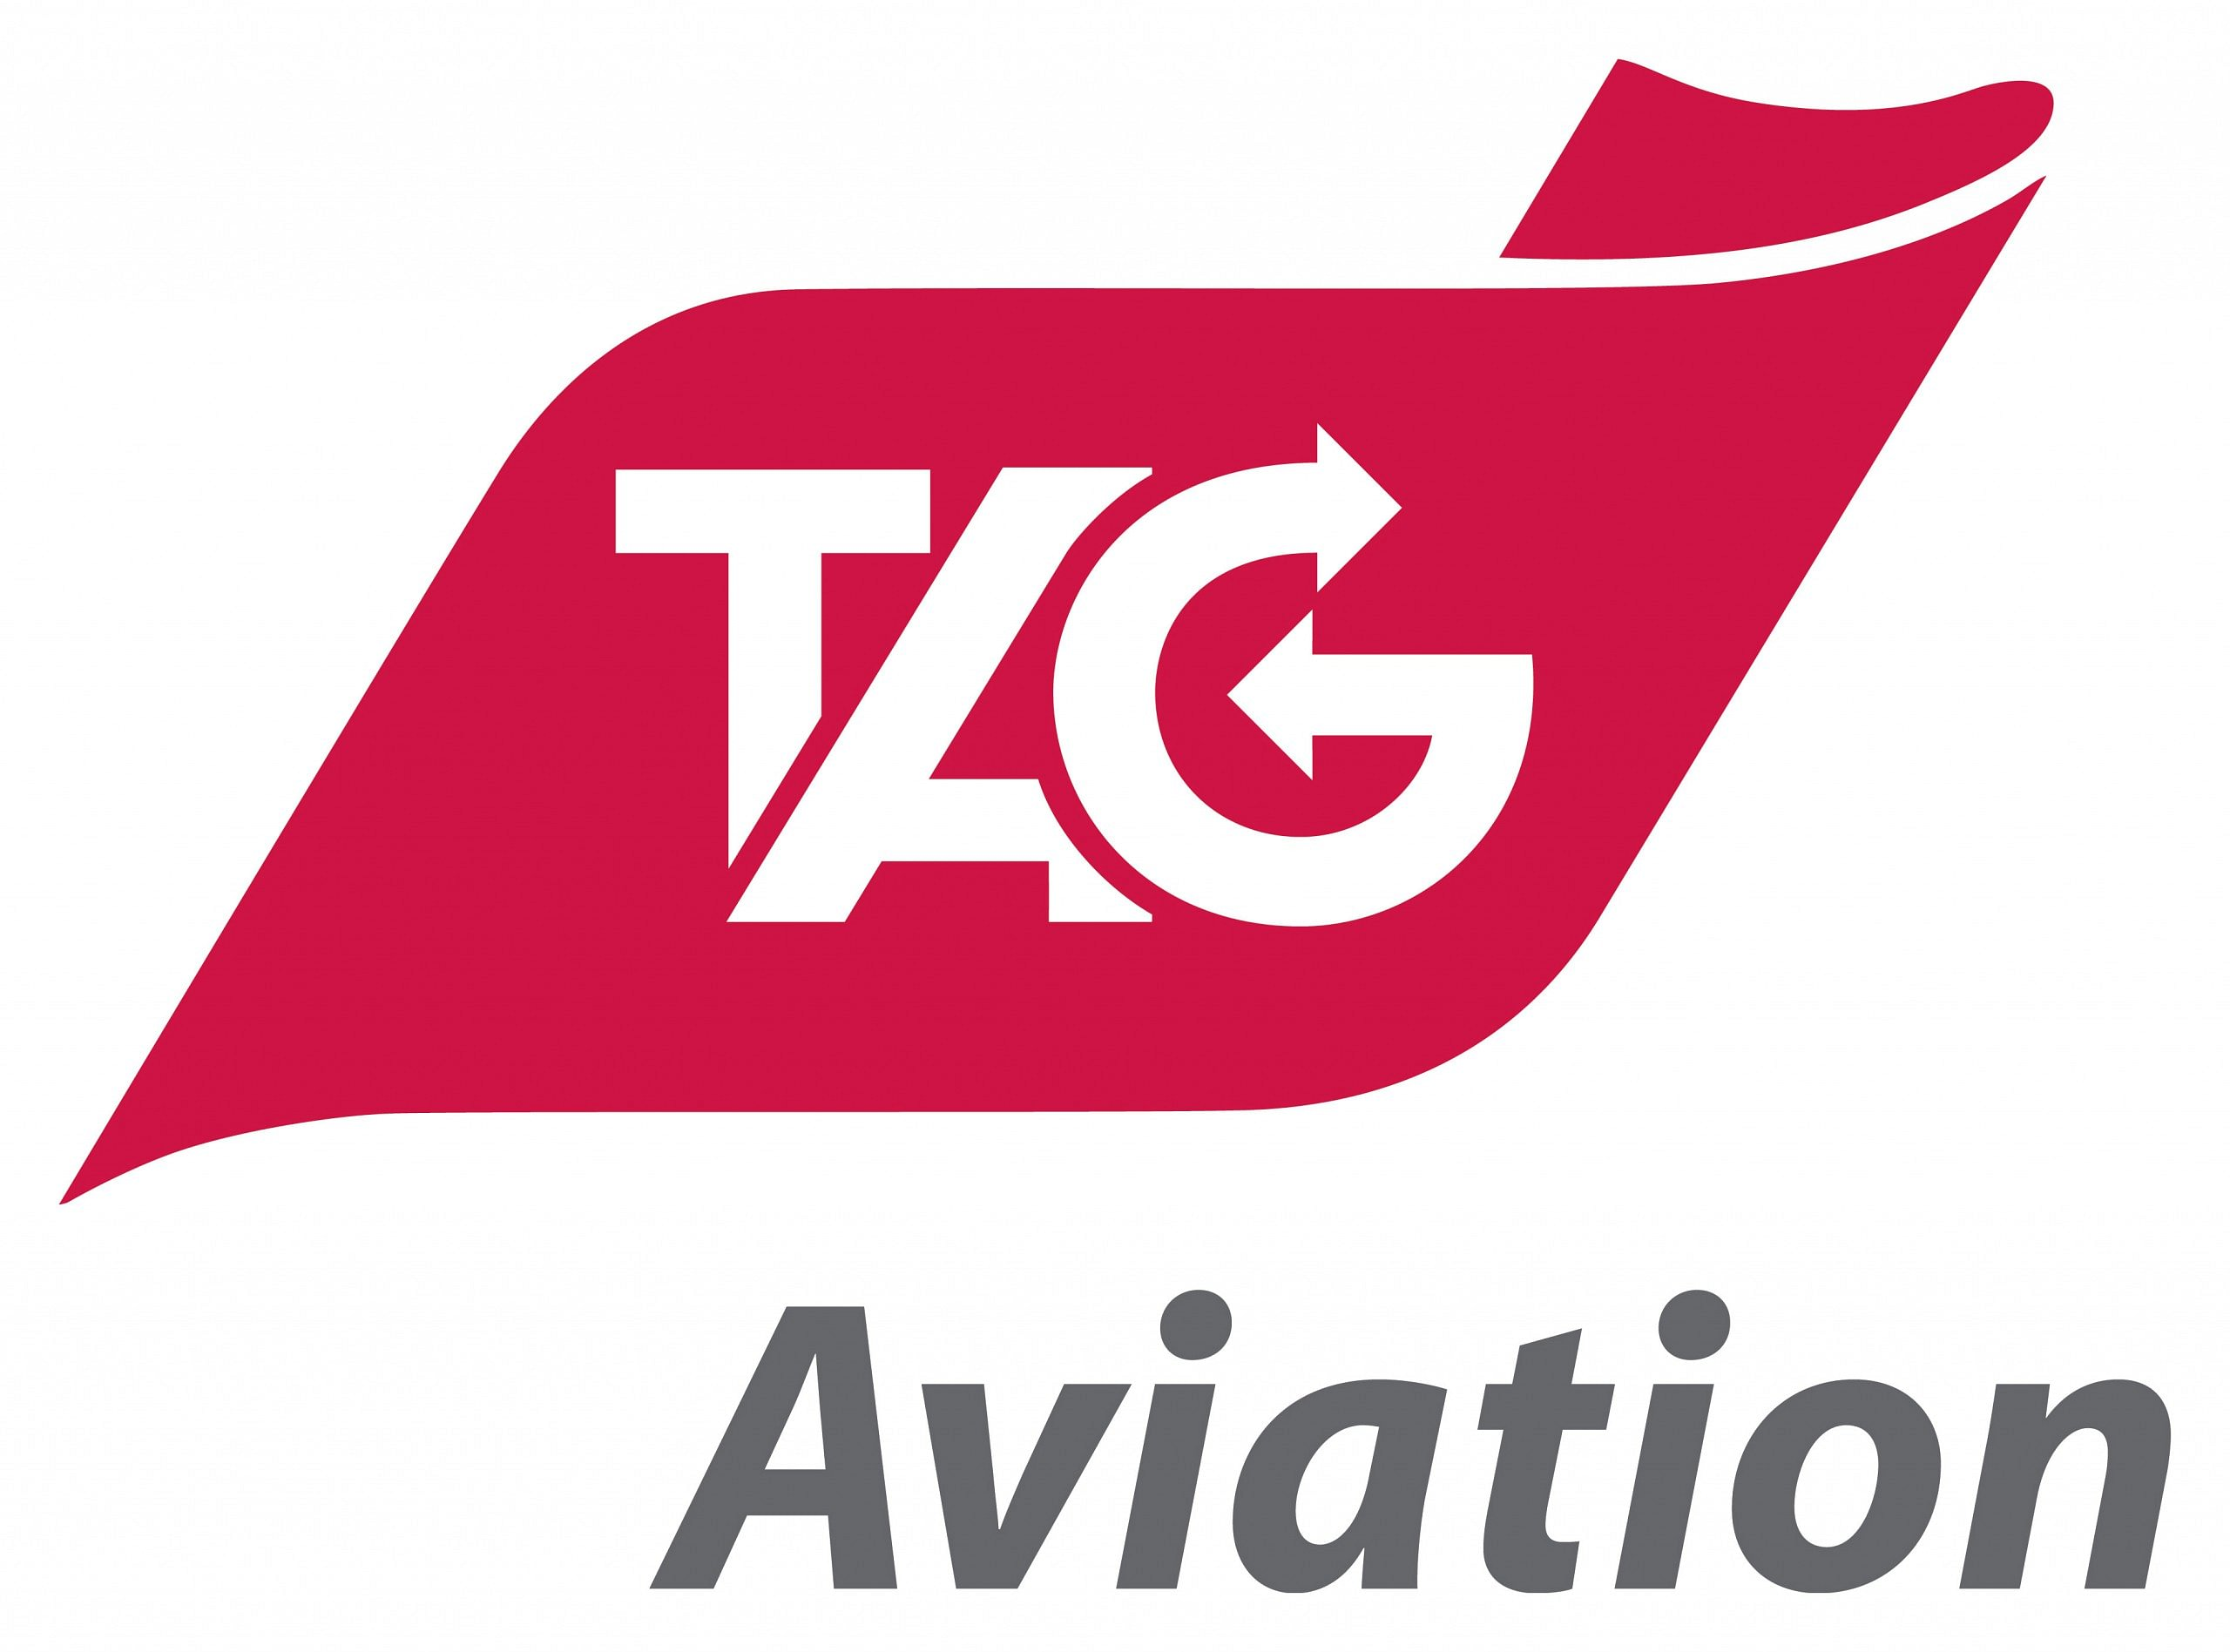 TAG Aviation SA